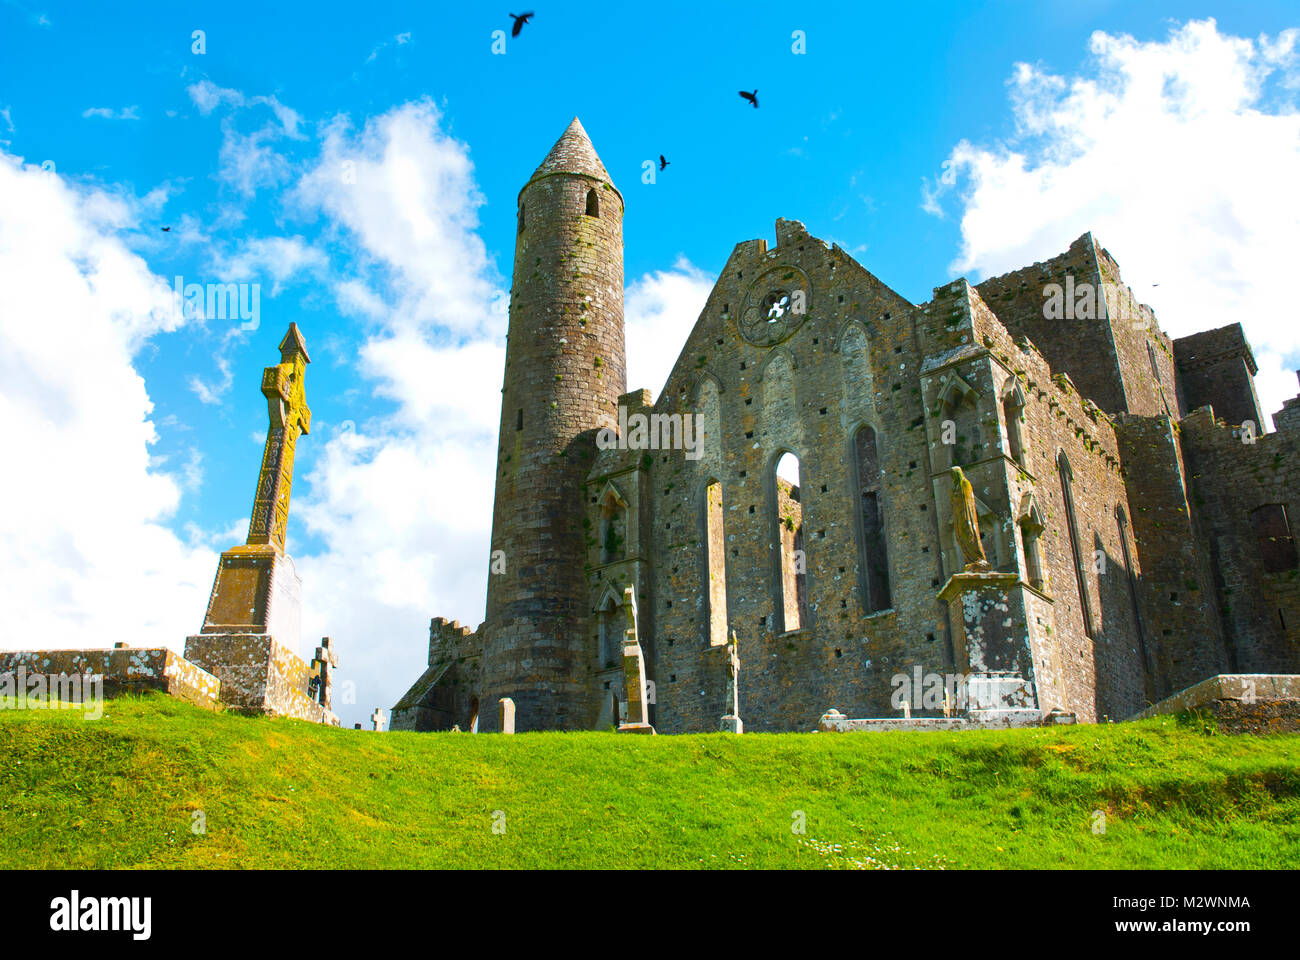 The Rock of Cashel in ireland with cross - Stock Image